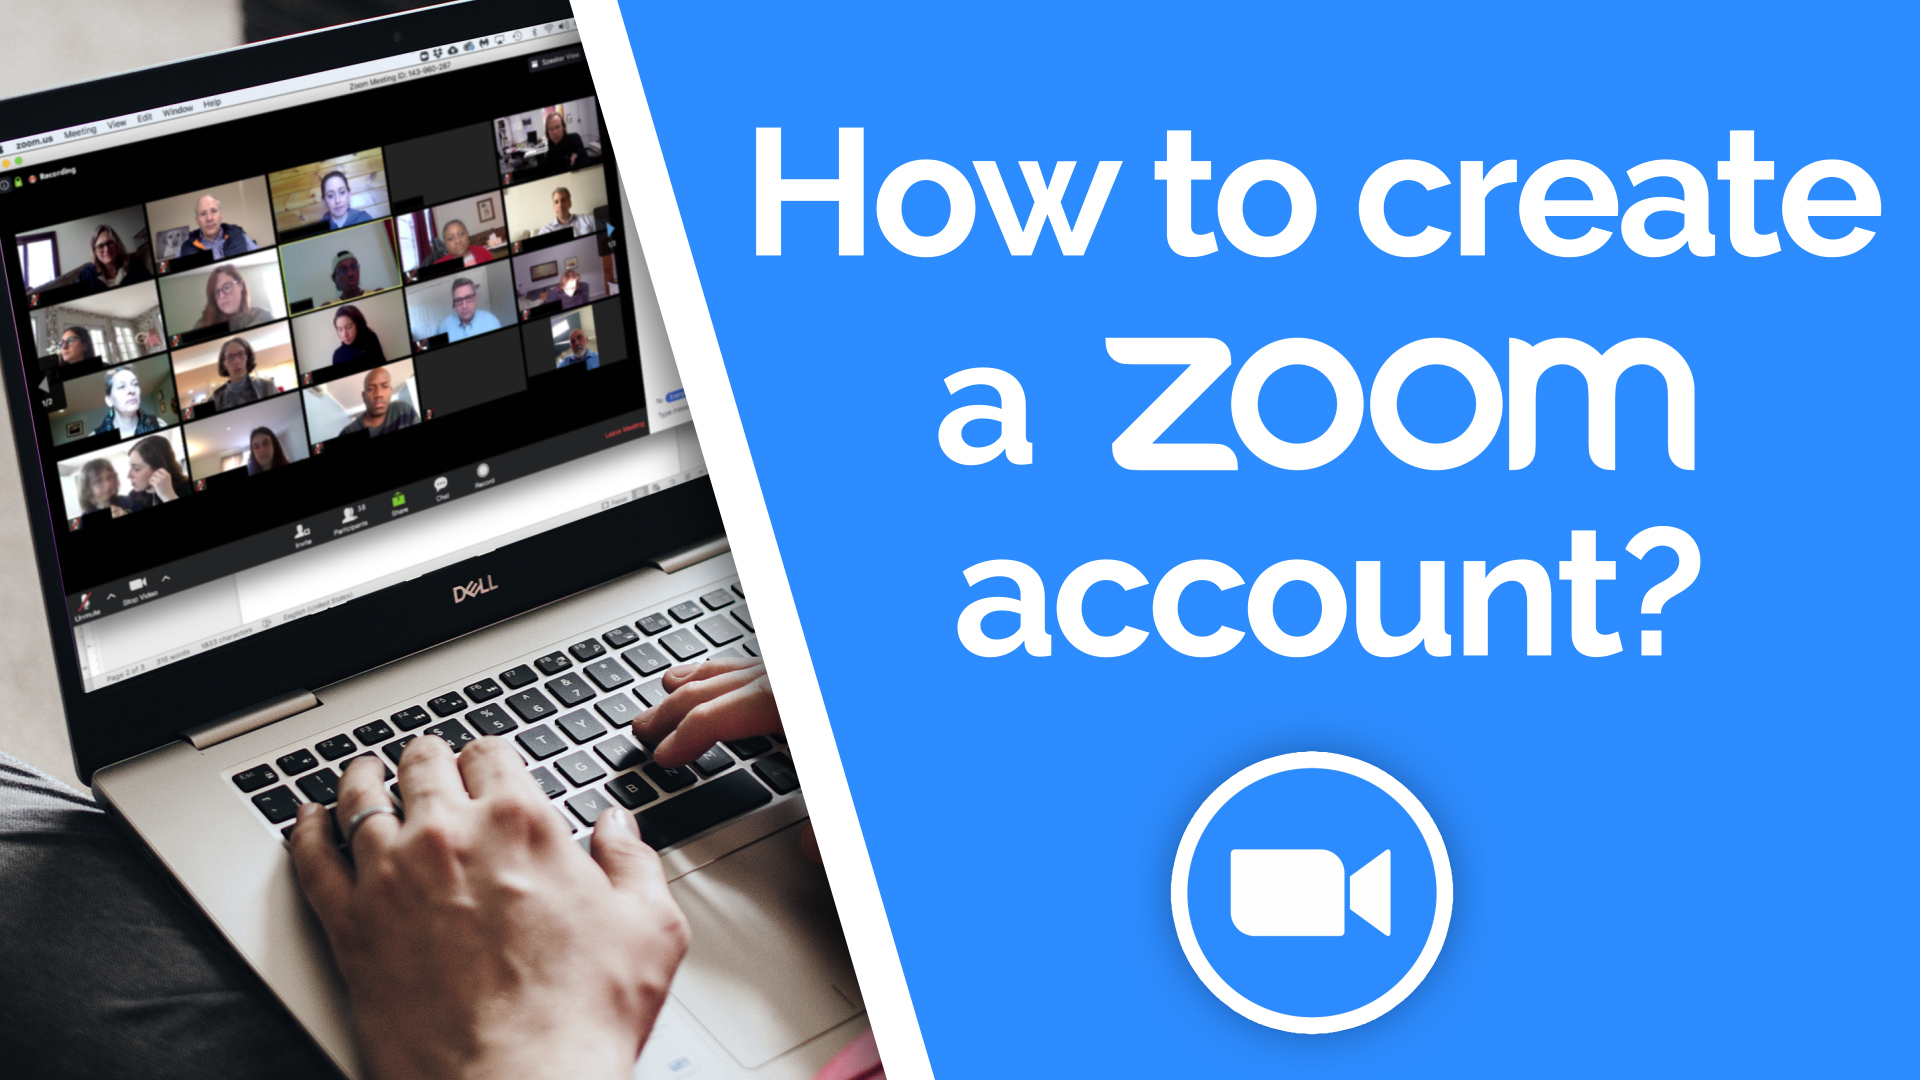 How to create a Zoom account?